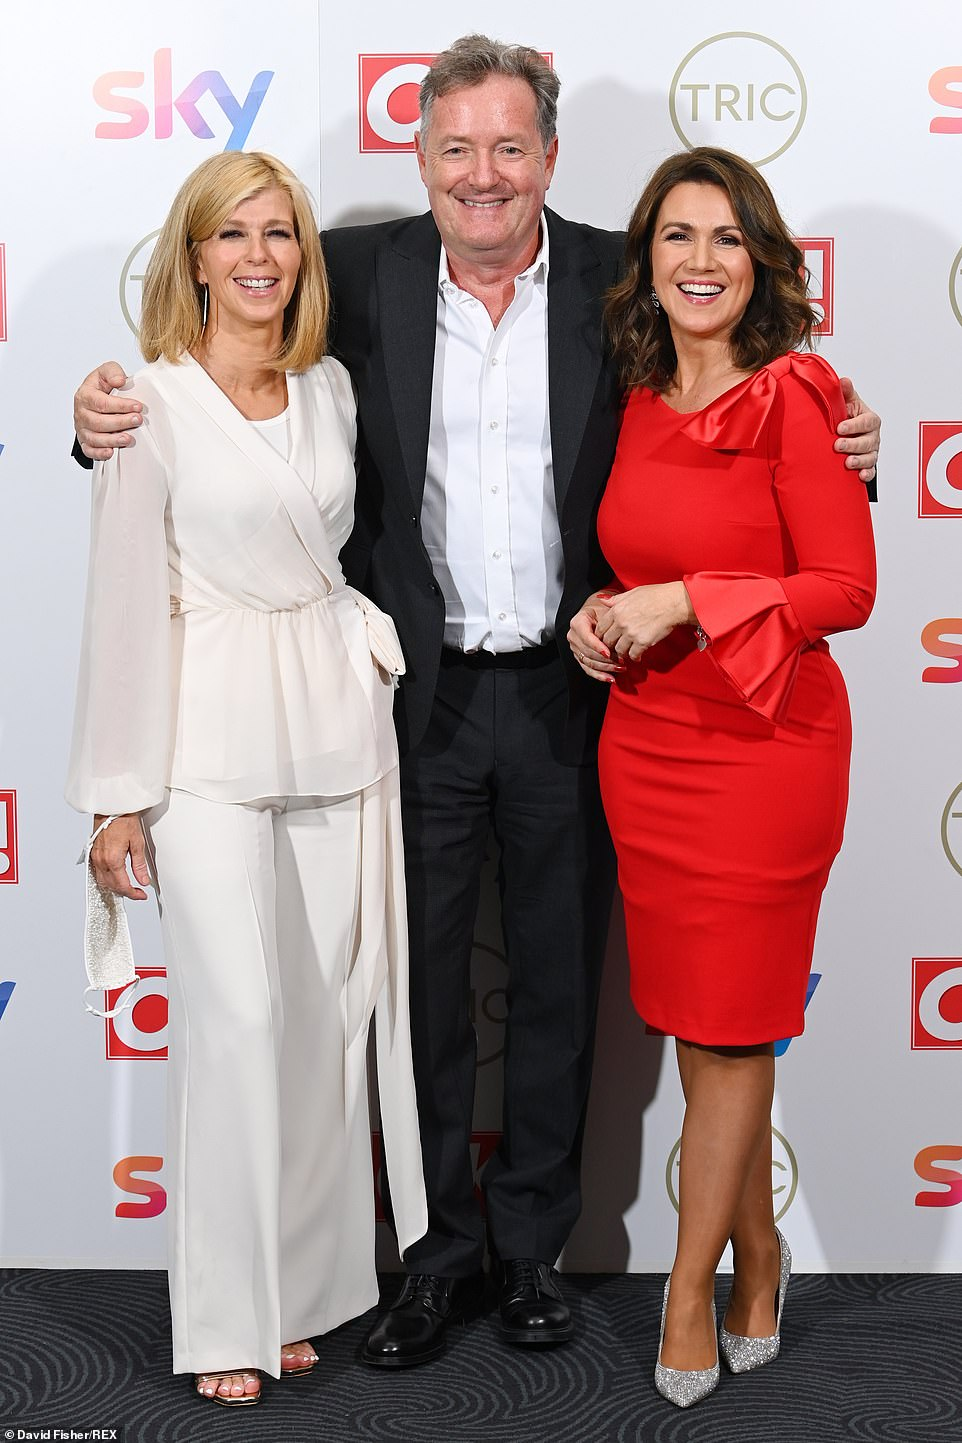 Close: Piers Morgan reunited with former Good Morning Britain co-hosts Kate Garraway and Susanna Reid on the red carpet at the 2021 TRIC Awards on Wednesday